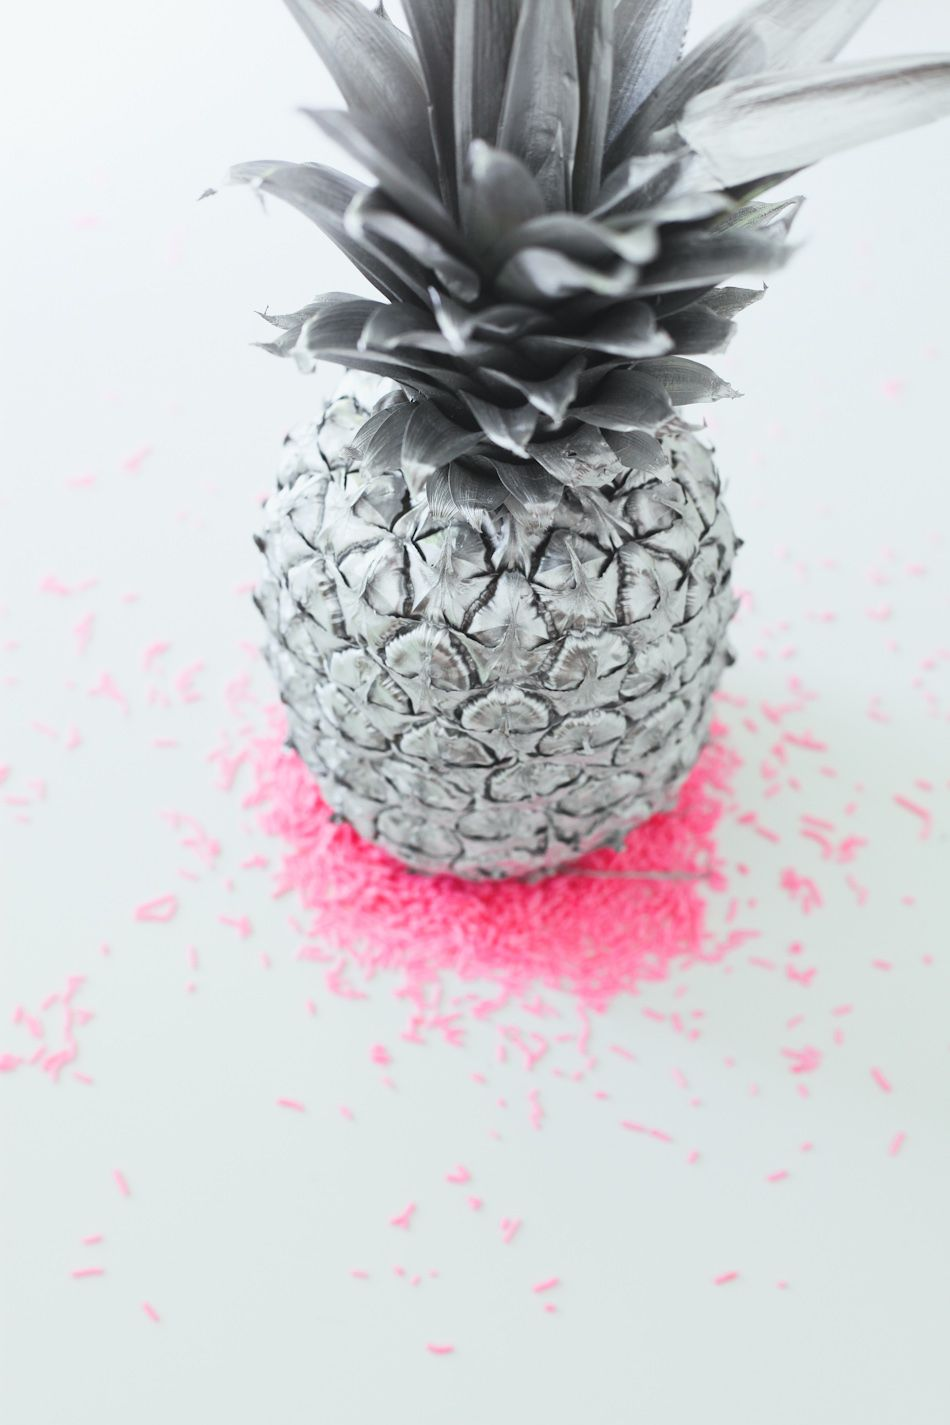 Juicy I Spy Color Pineapple Wallpaper Pineapple